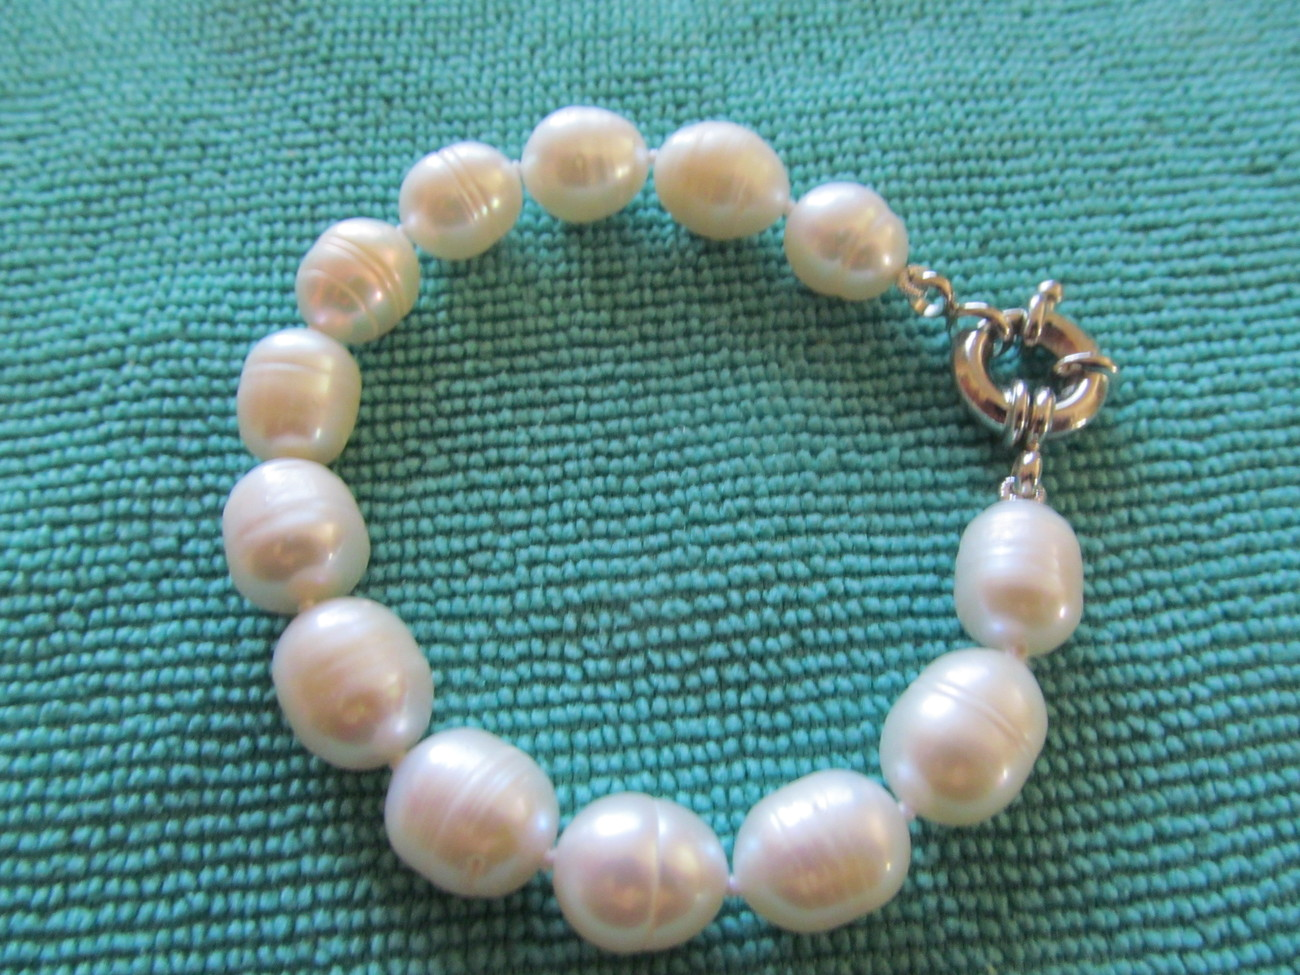 CULTURED RING PEARL BRACELET 7.5 INCH WHITE